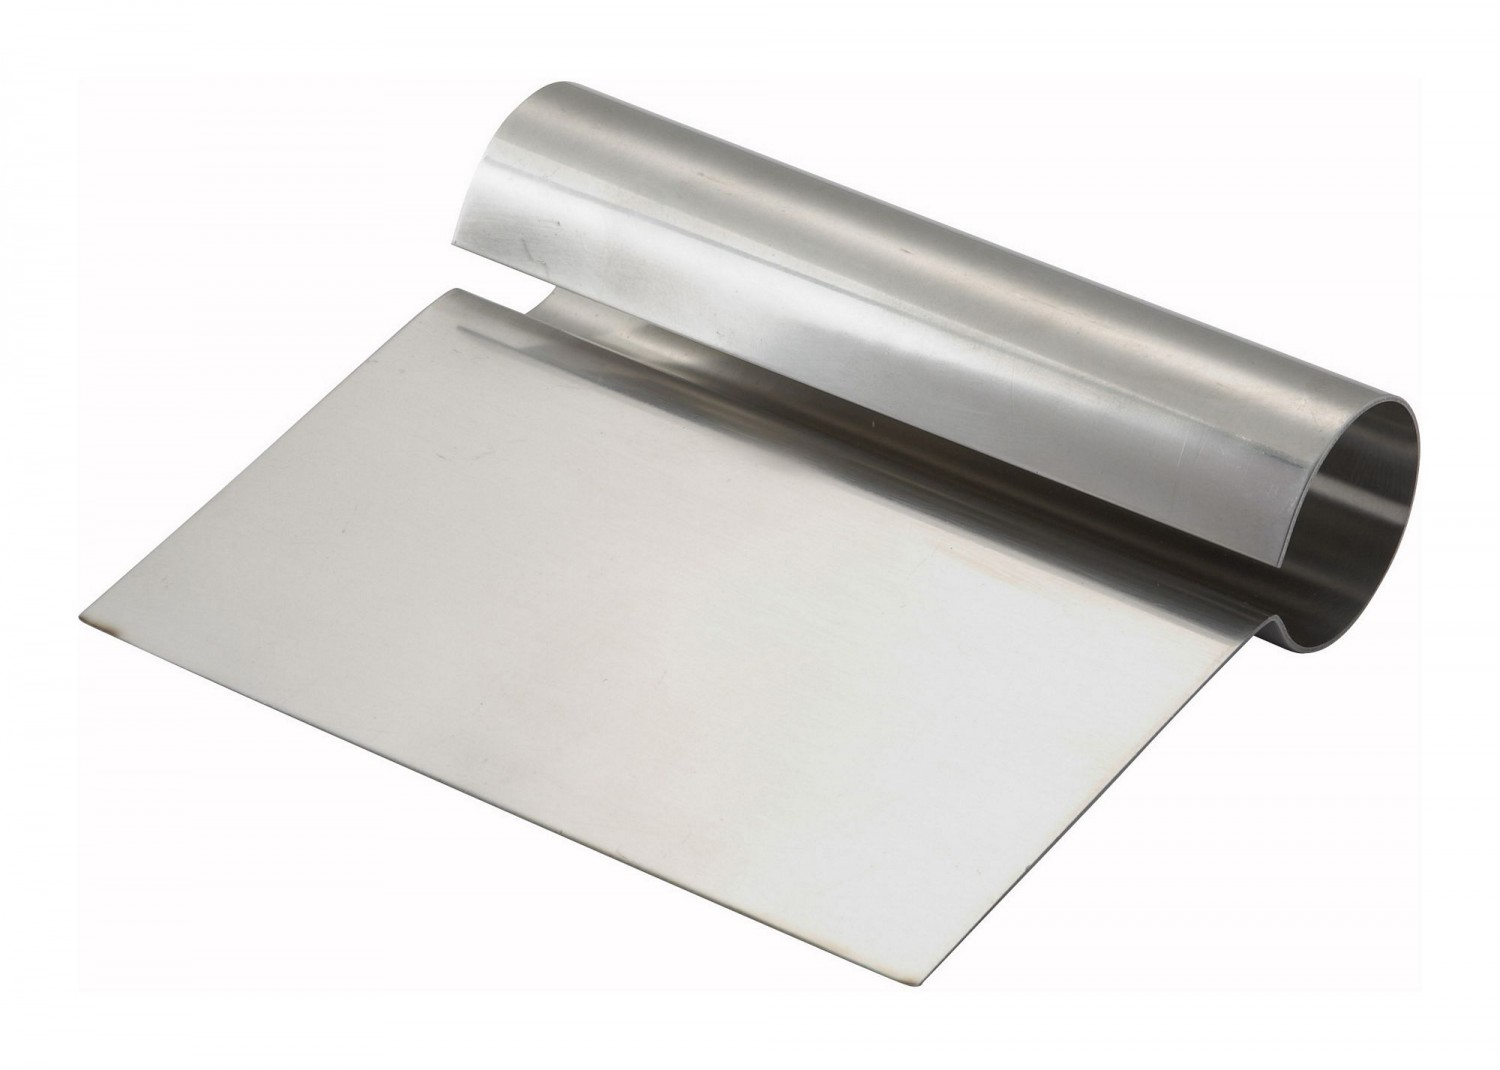 Winco DSC-1 Stainless Steel Dough Scraper